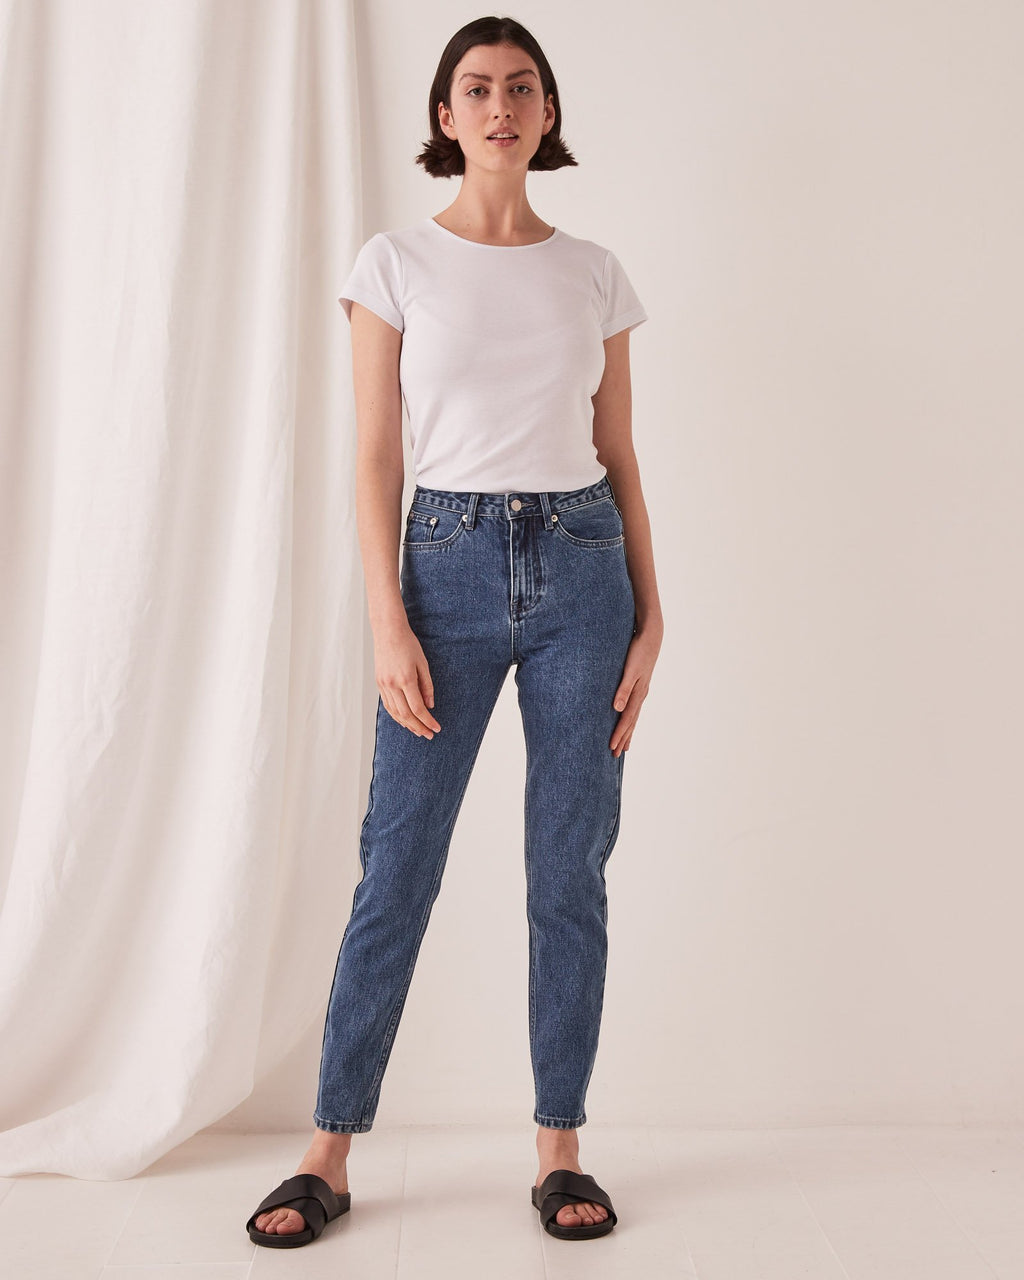 Assembly Label High Waist Rigid Jean - Vintage Blue